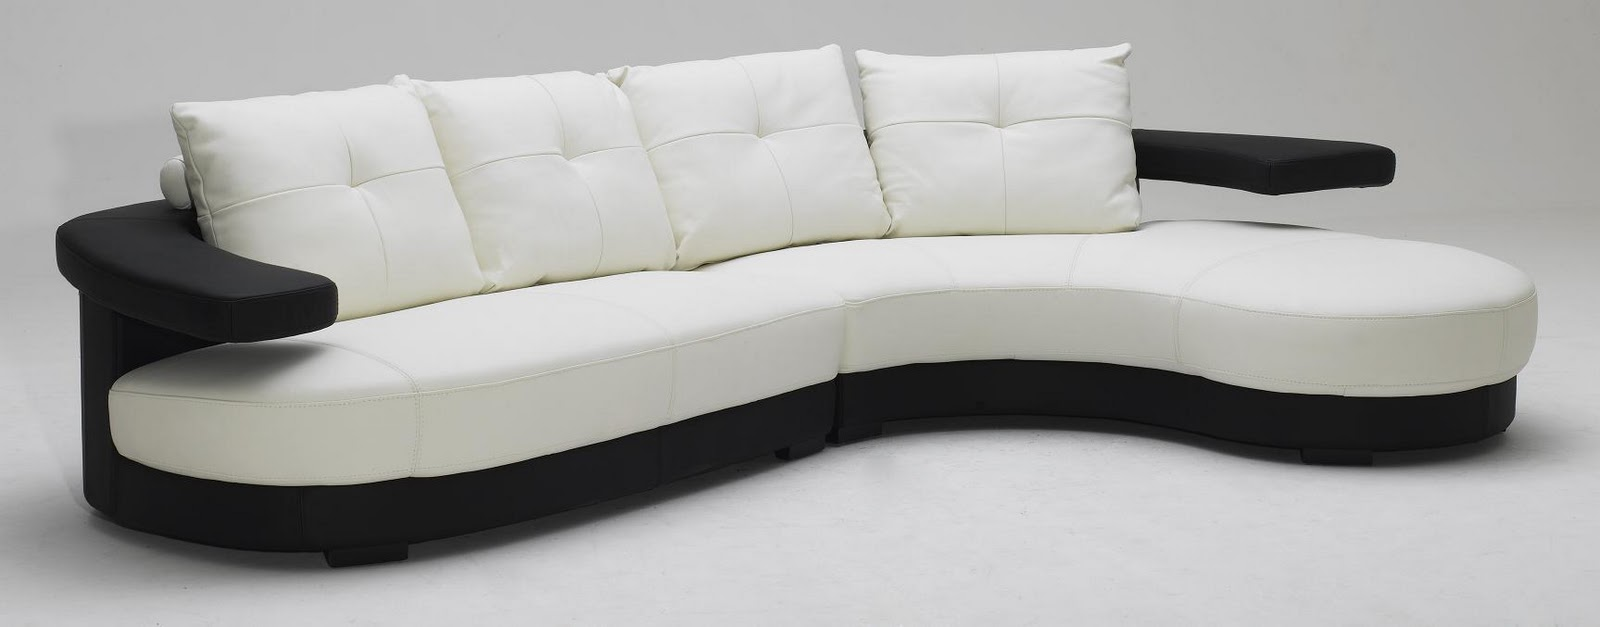 Remarkable Black and White Sectional Sofa 1600 x 627 · 63 kB · jpeg